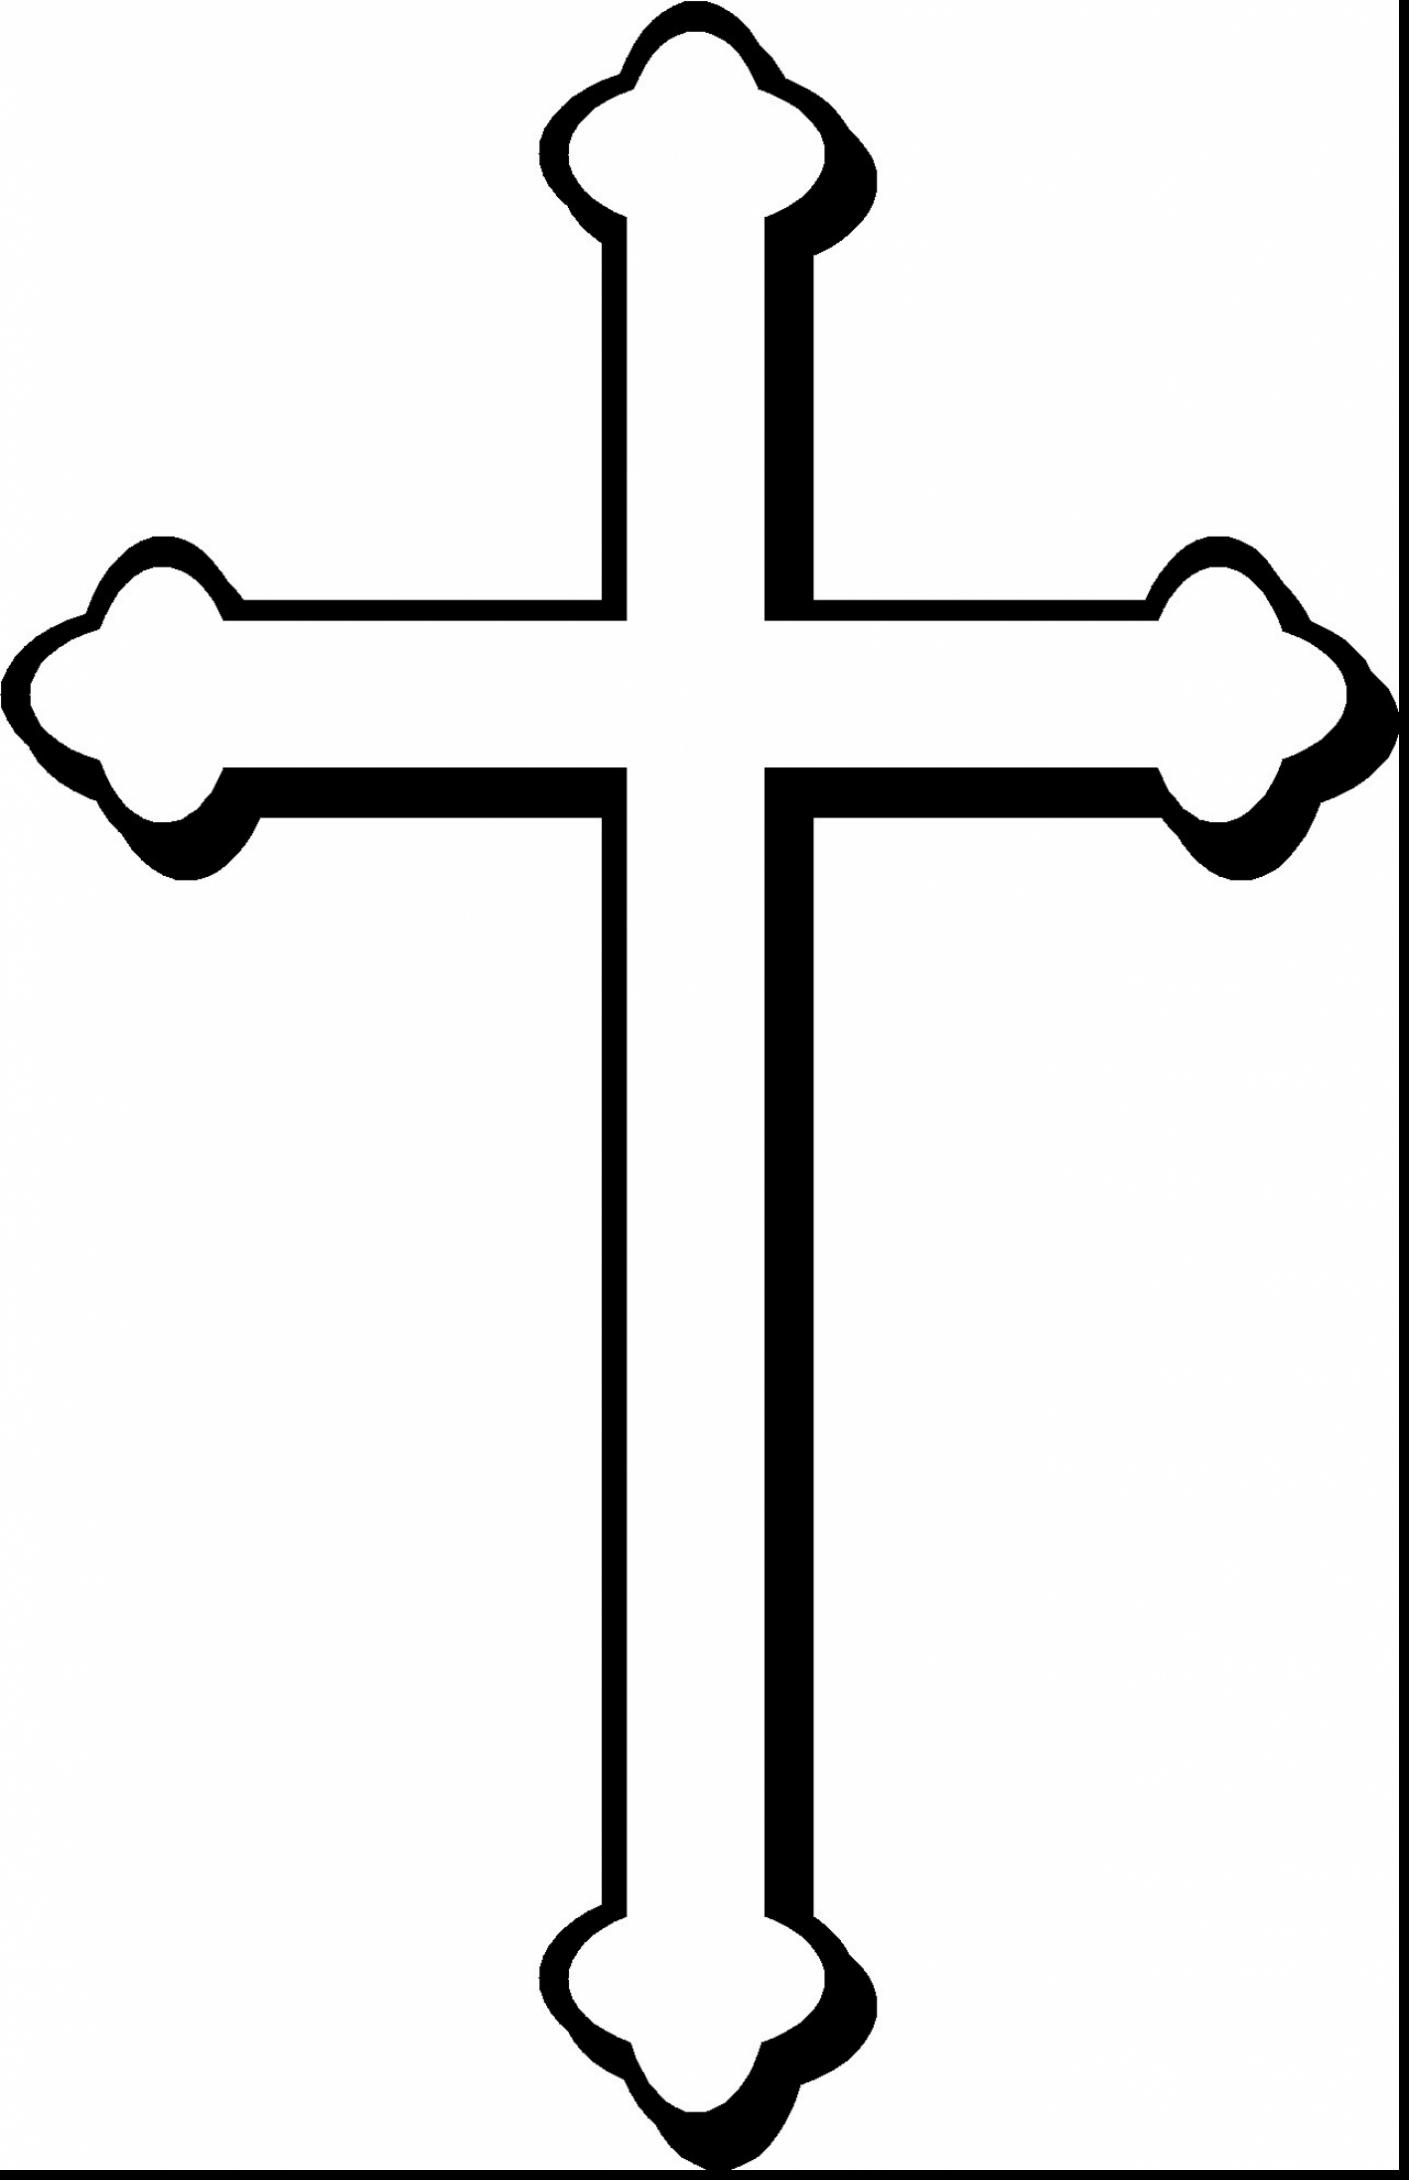 Crosses Clipart | Free download best Crosses Clipart on ClipArtMag.com